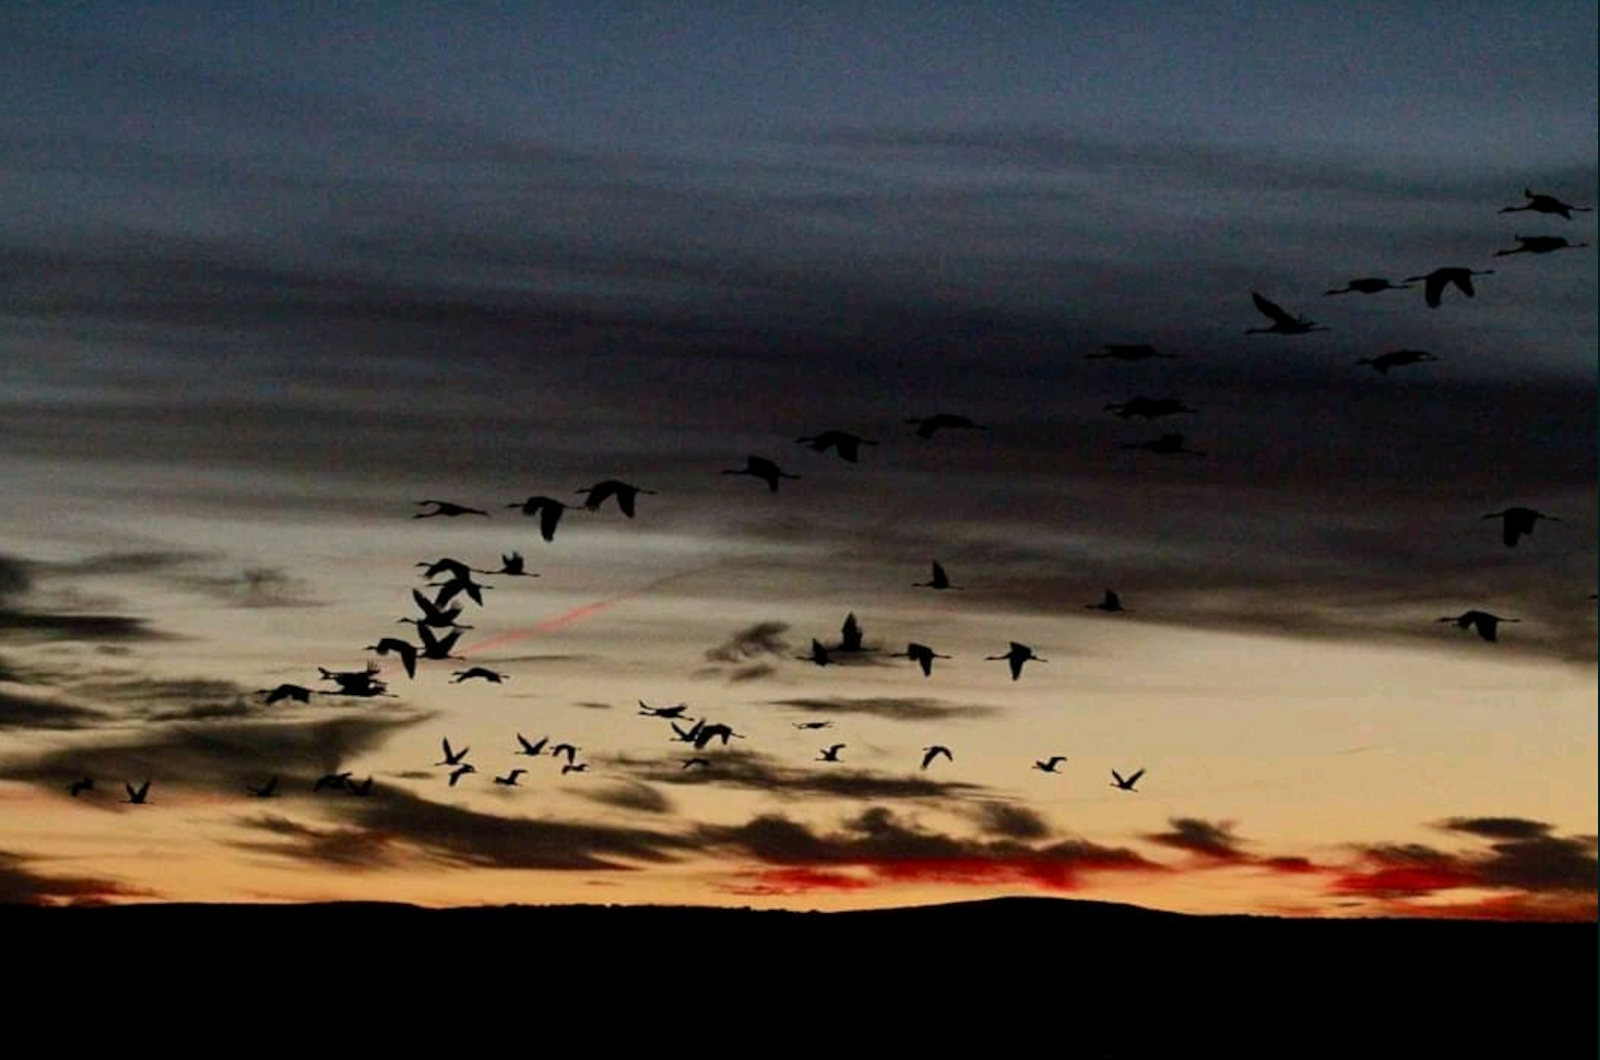 Common cranes take to the air as dawn breaks